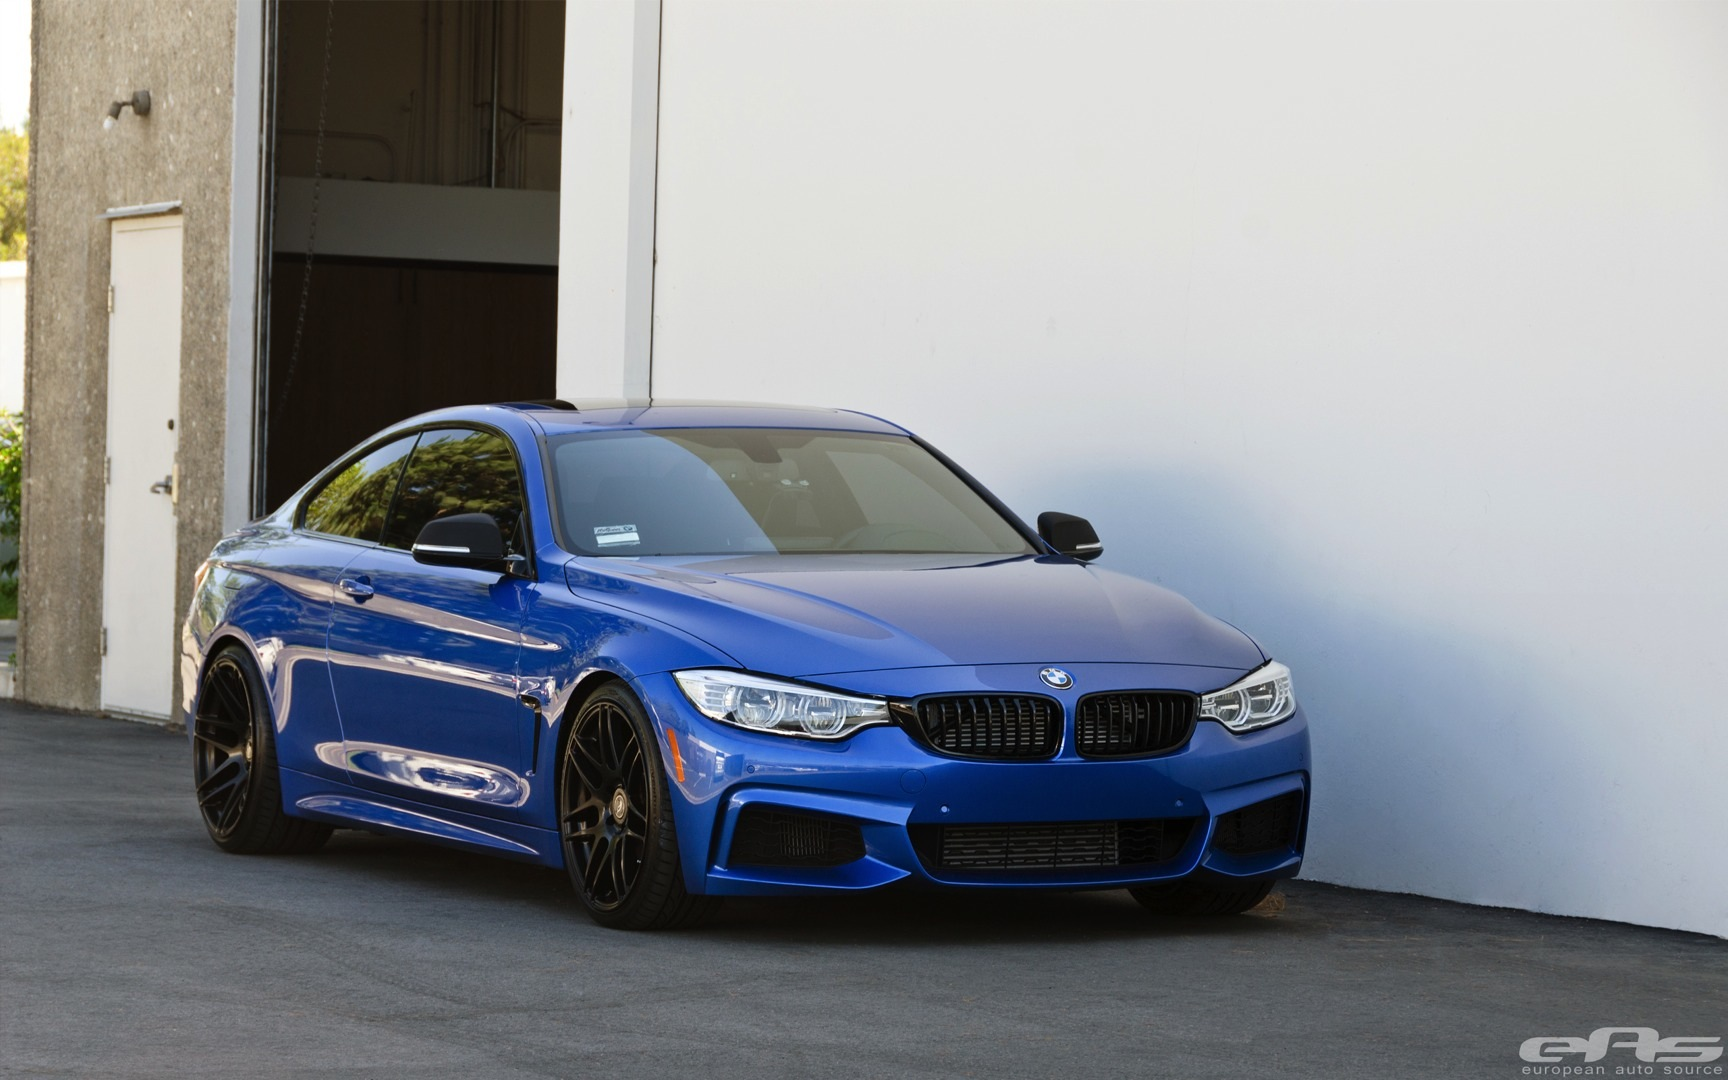 Hd Tune Up Cars Wallpaper Lowered Estoril Blue Bmw 435i Is Just Right Autoevolution